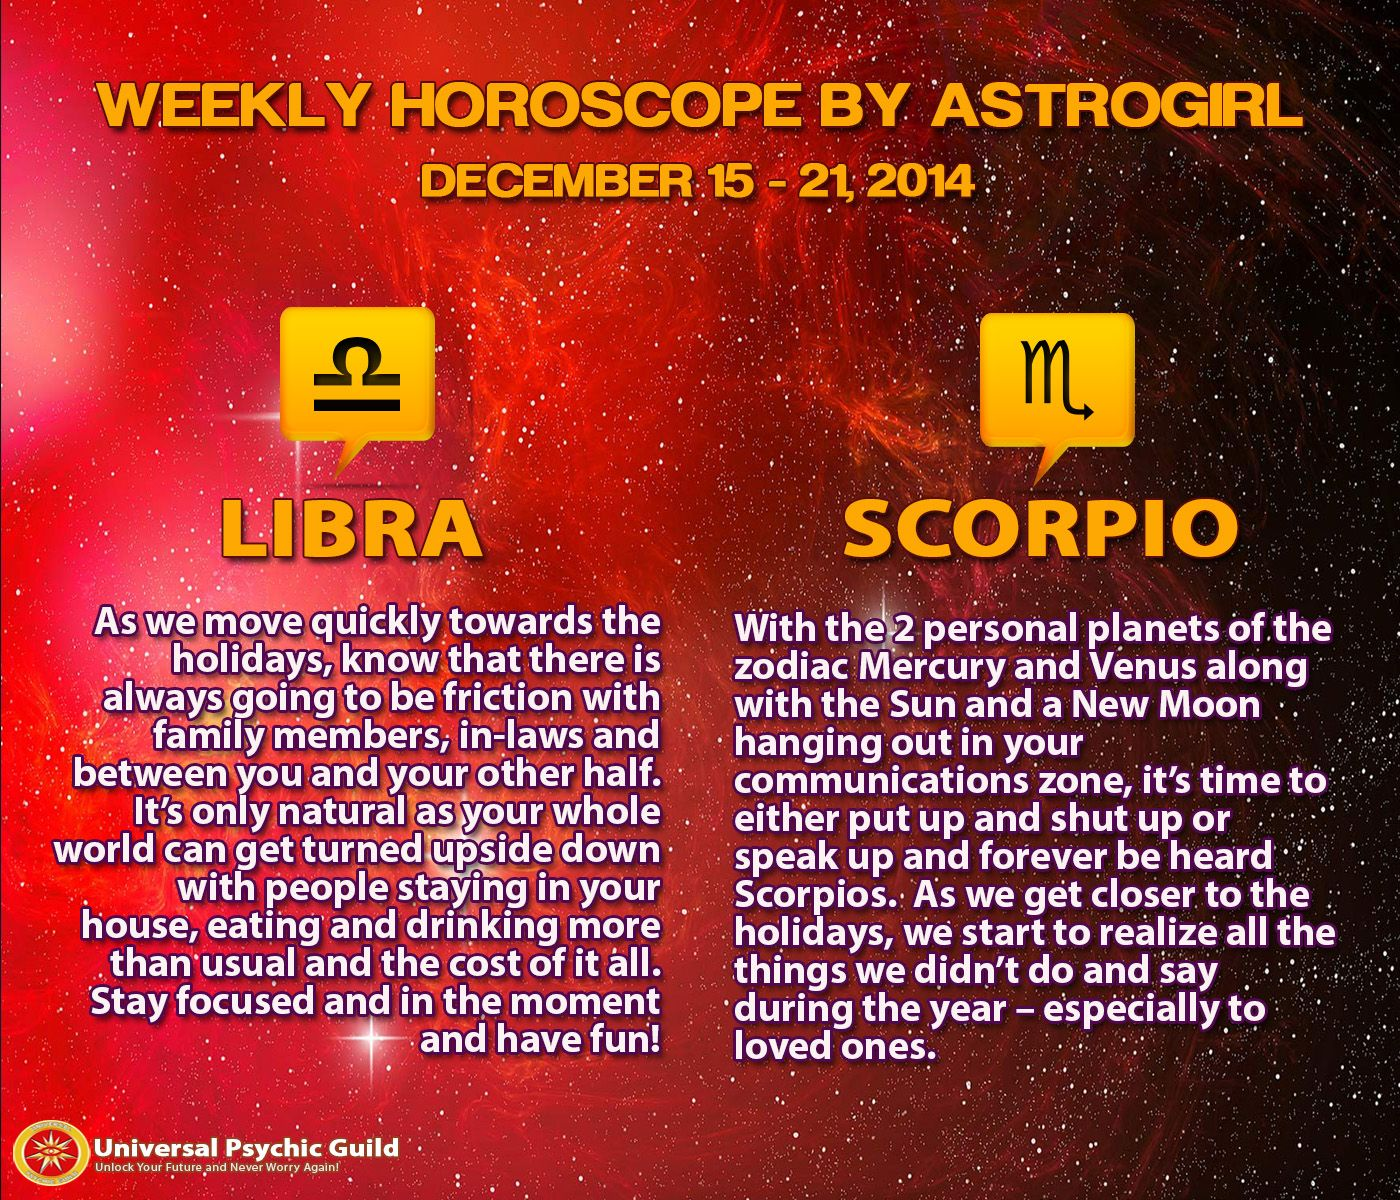 Astrology Updates: Weekly #Horoscopes for #ZodiacSigns #Libra and